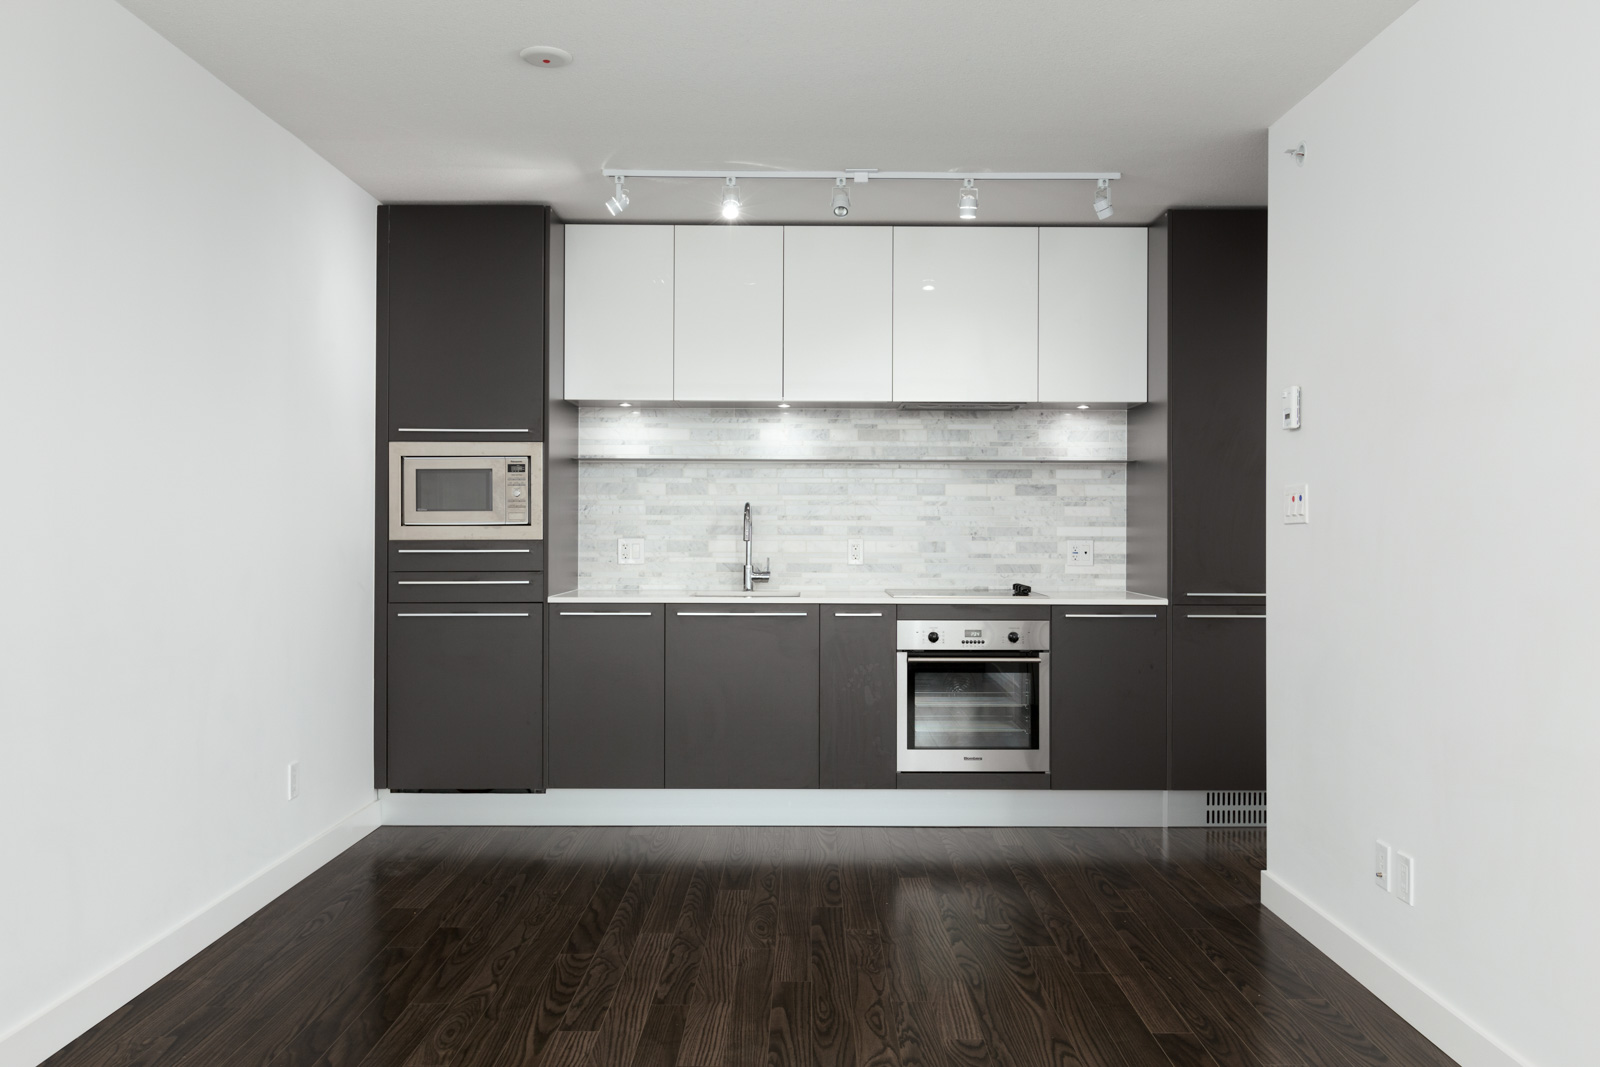 Modern kitchen with stainless steel oven, microwave and sink with plenty of shelf storage and overhead lighting. The unit has laminate hardwood flooring, and plenty of natural light in a rental condo in Vancouver offered by Birds Nest Properties.